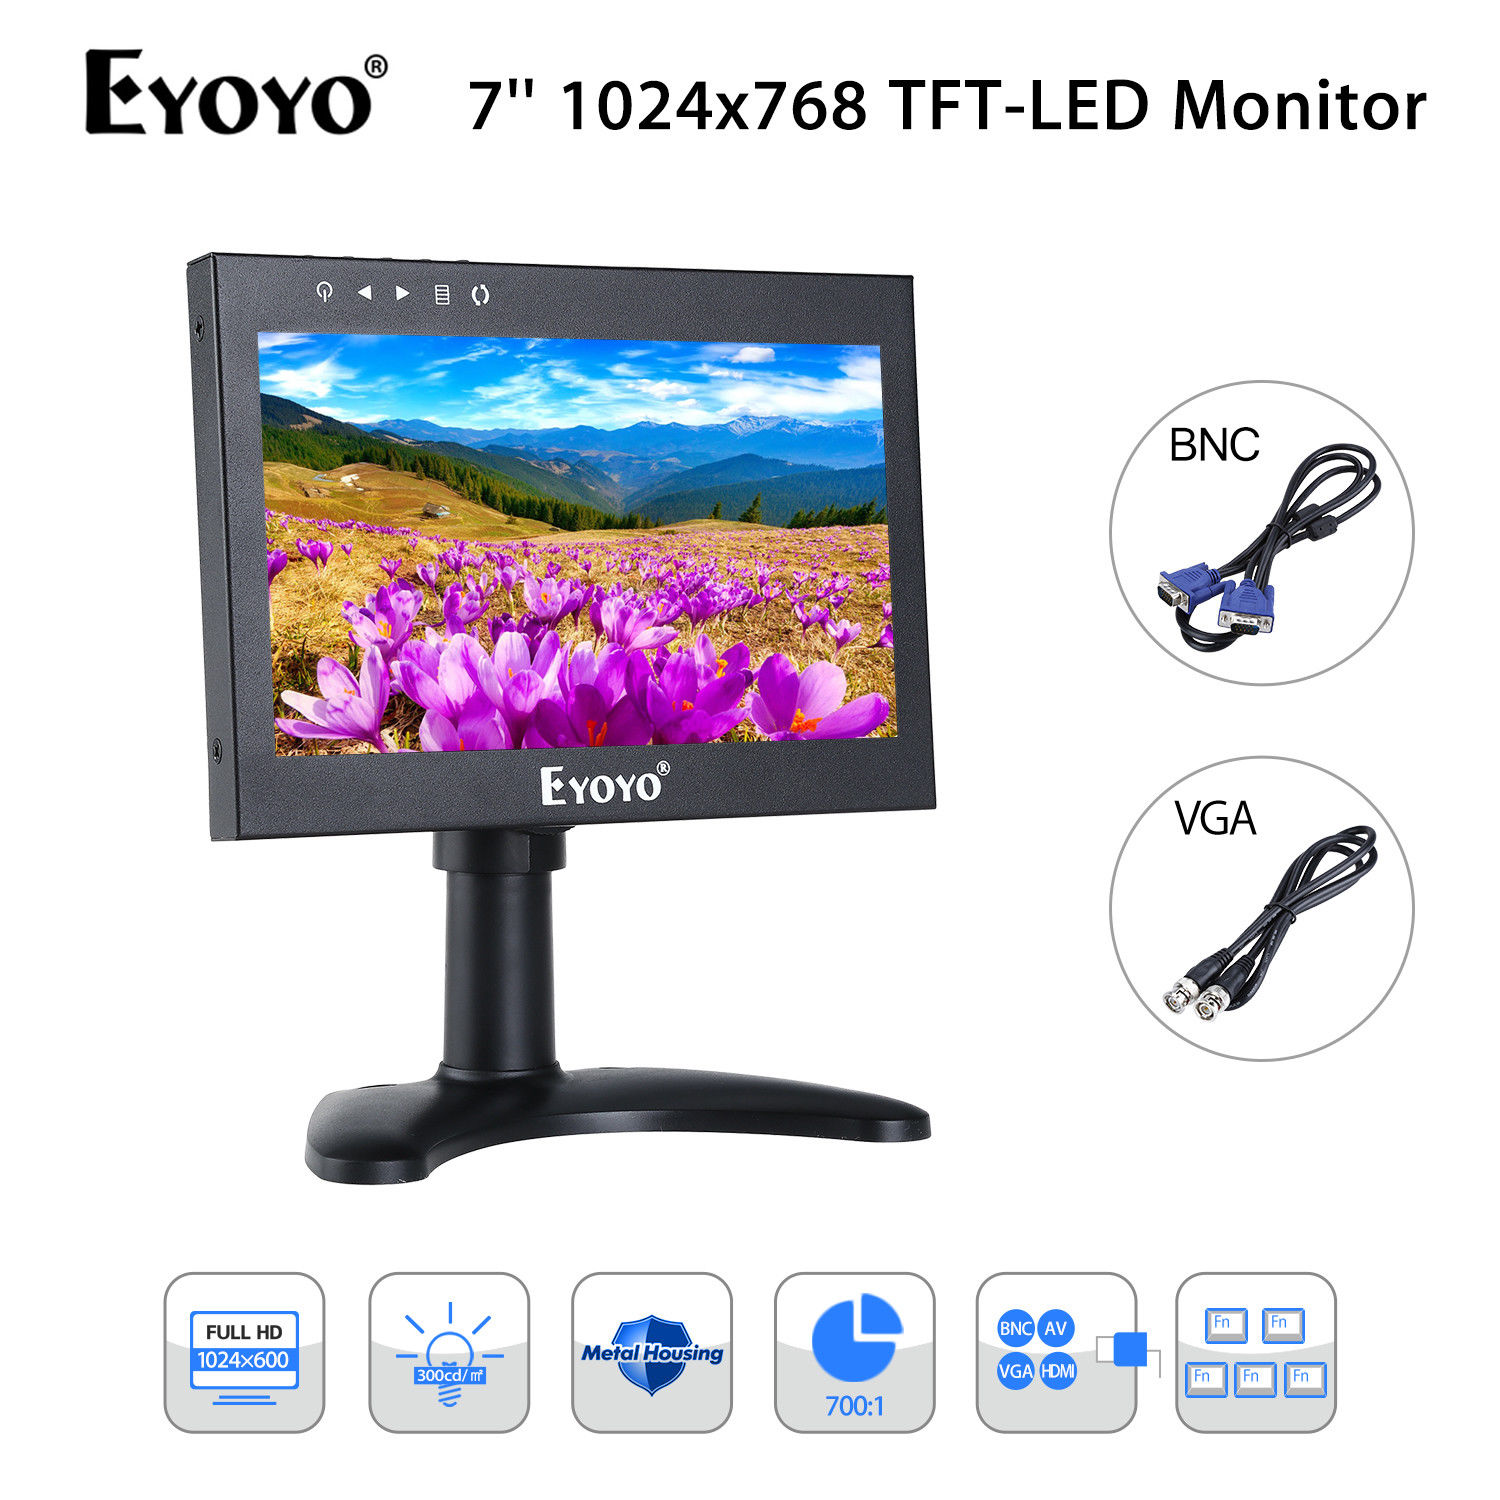 EYOYO 7'' FHD LCD Display 1024x600 300cd/m2 Video Audio VGA BNC HDMI Monitor Metal Housing Built-in 5000MHA Rechargeable Battery